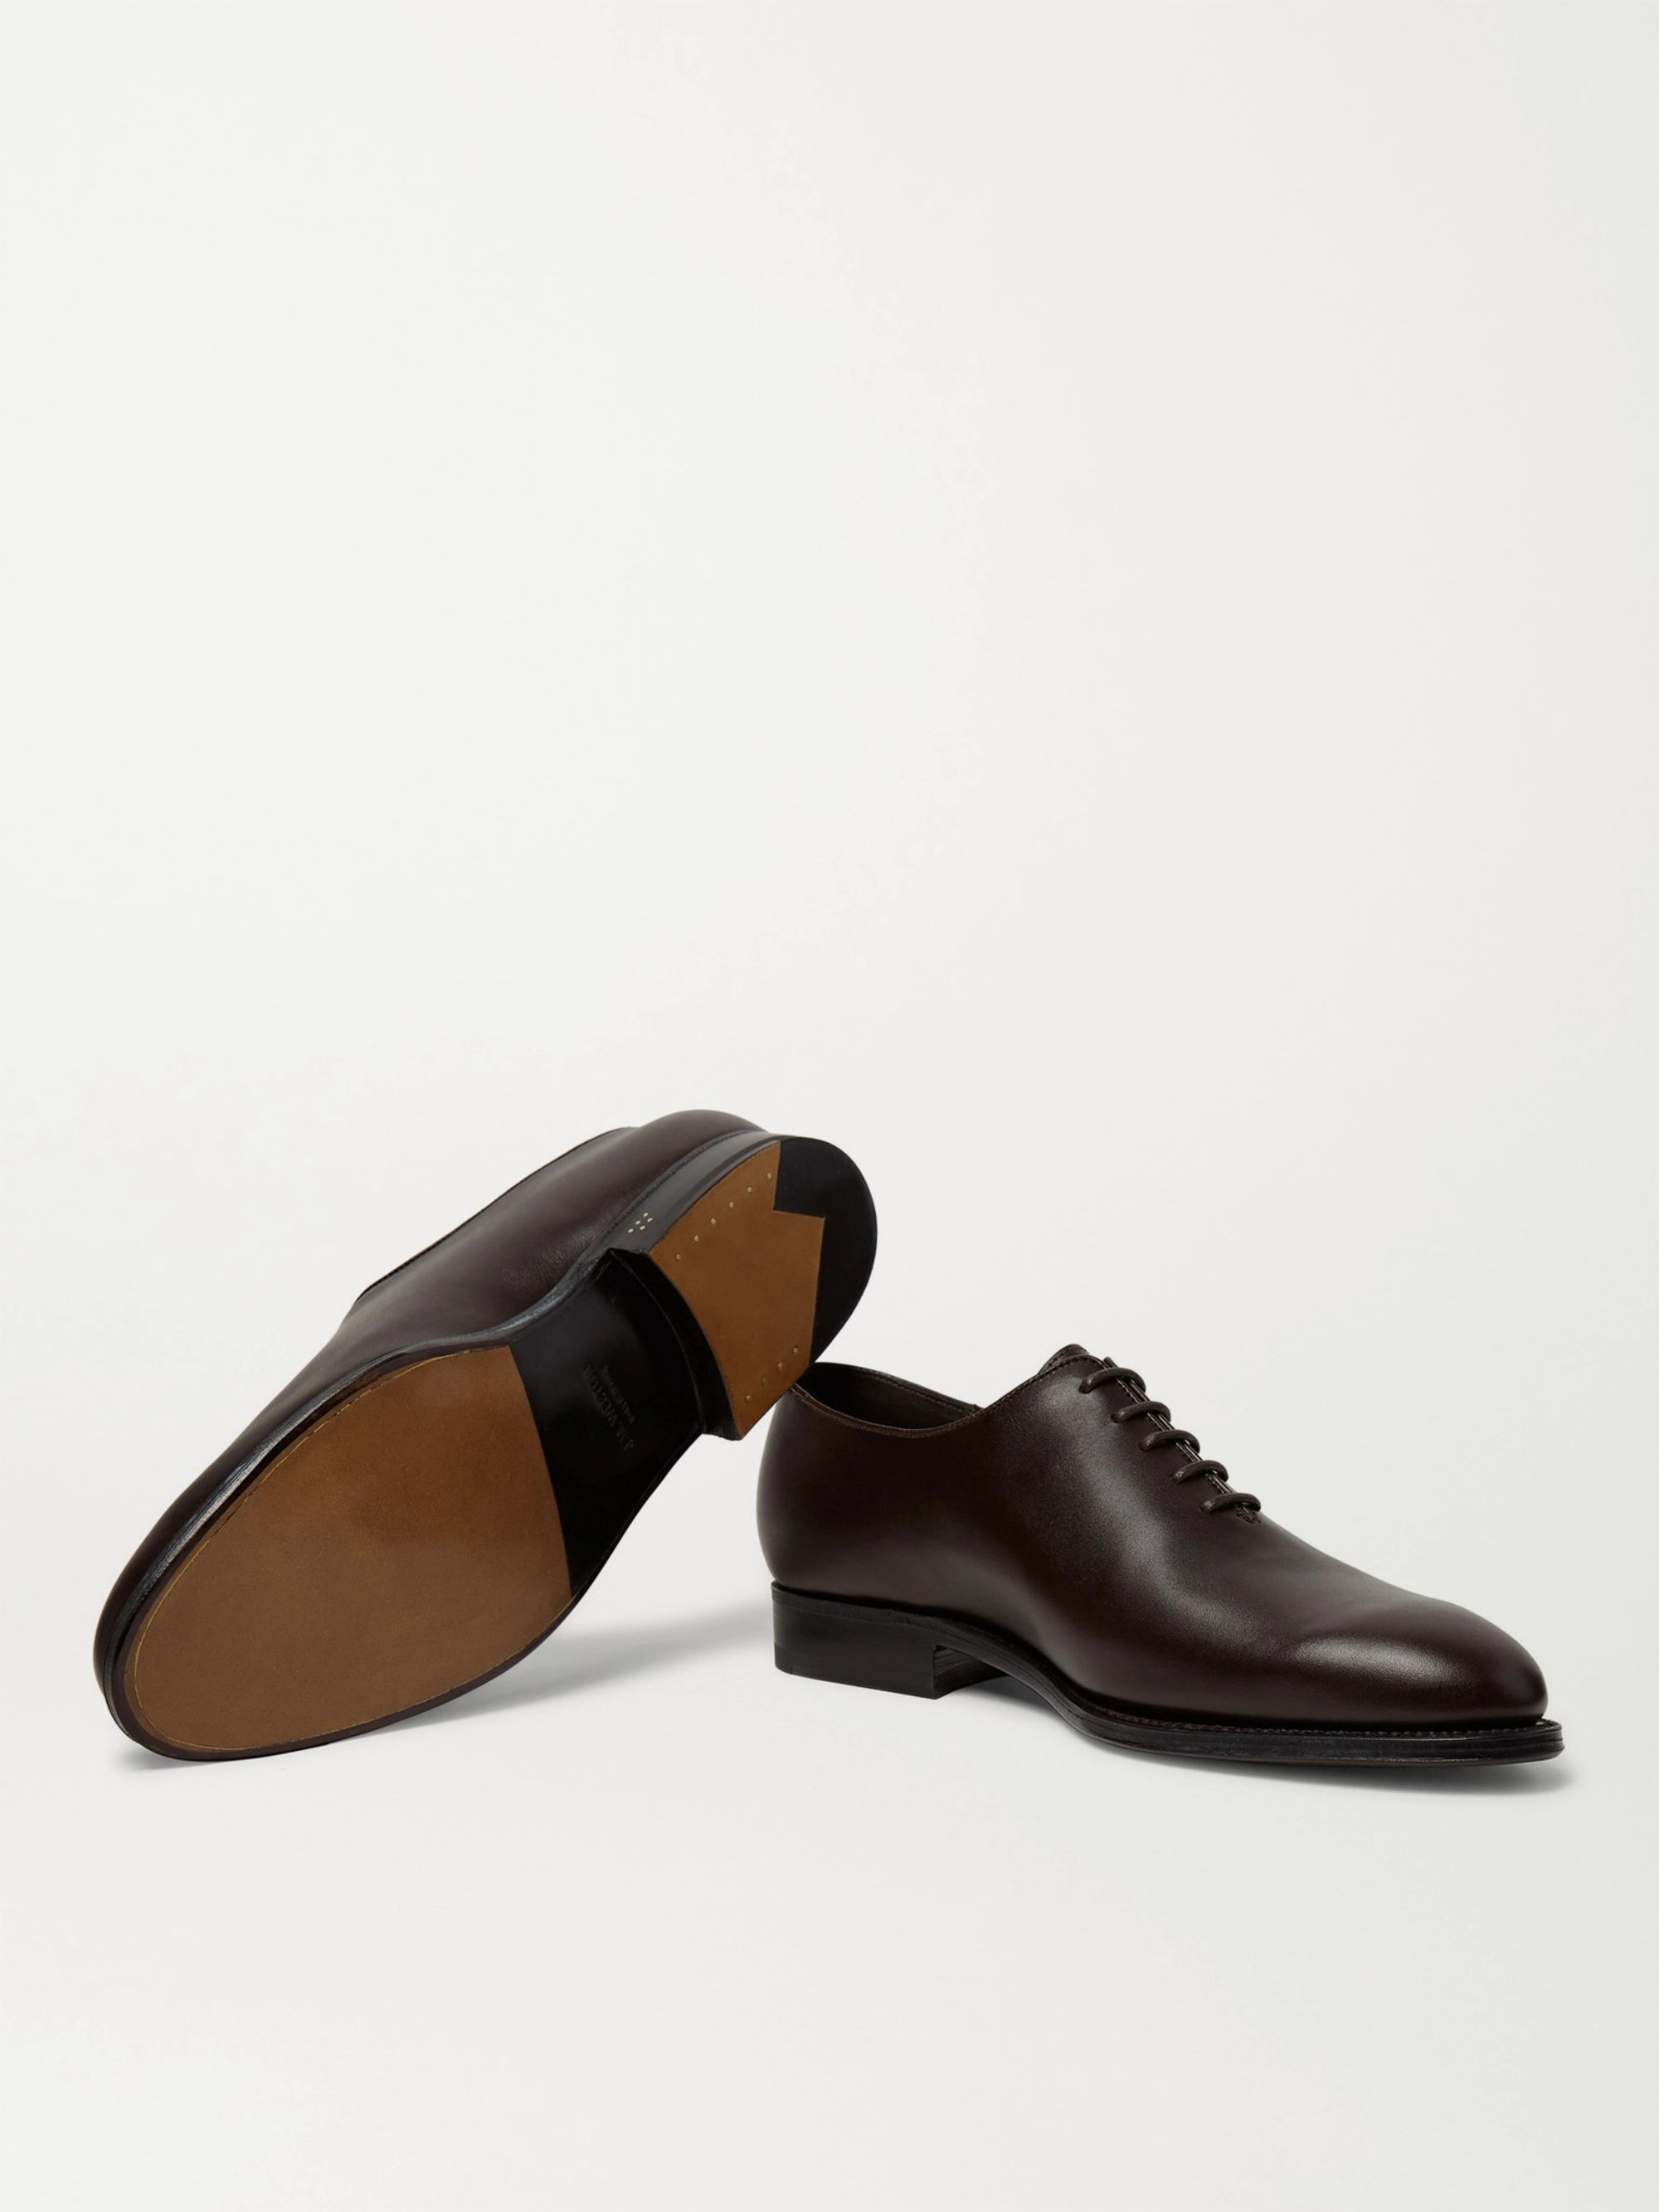 J.M. Weston Rémi Whole-Cut Leather Oxford Shoes